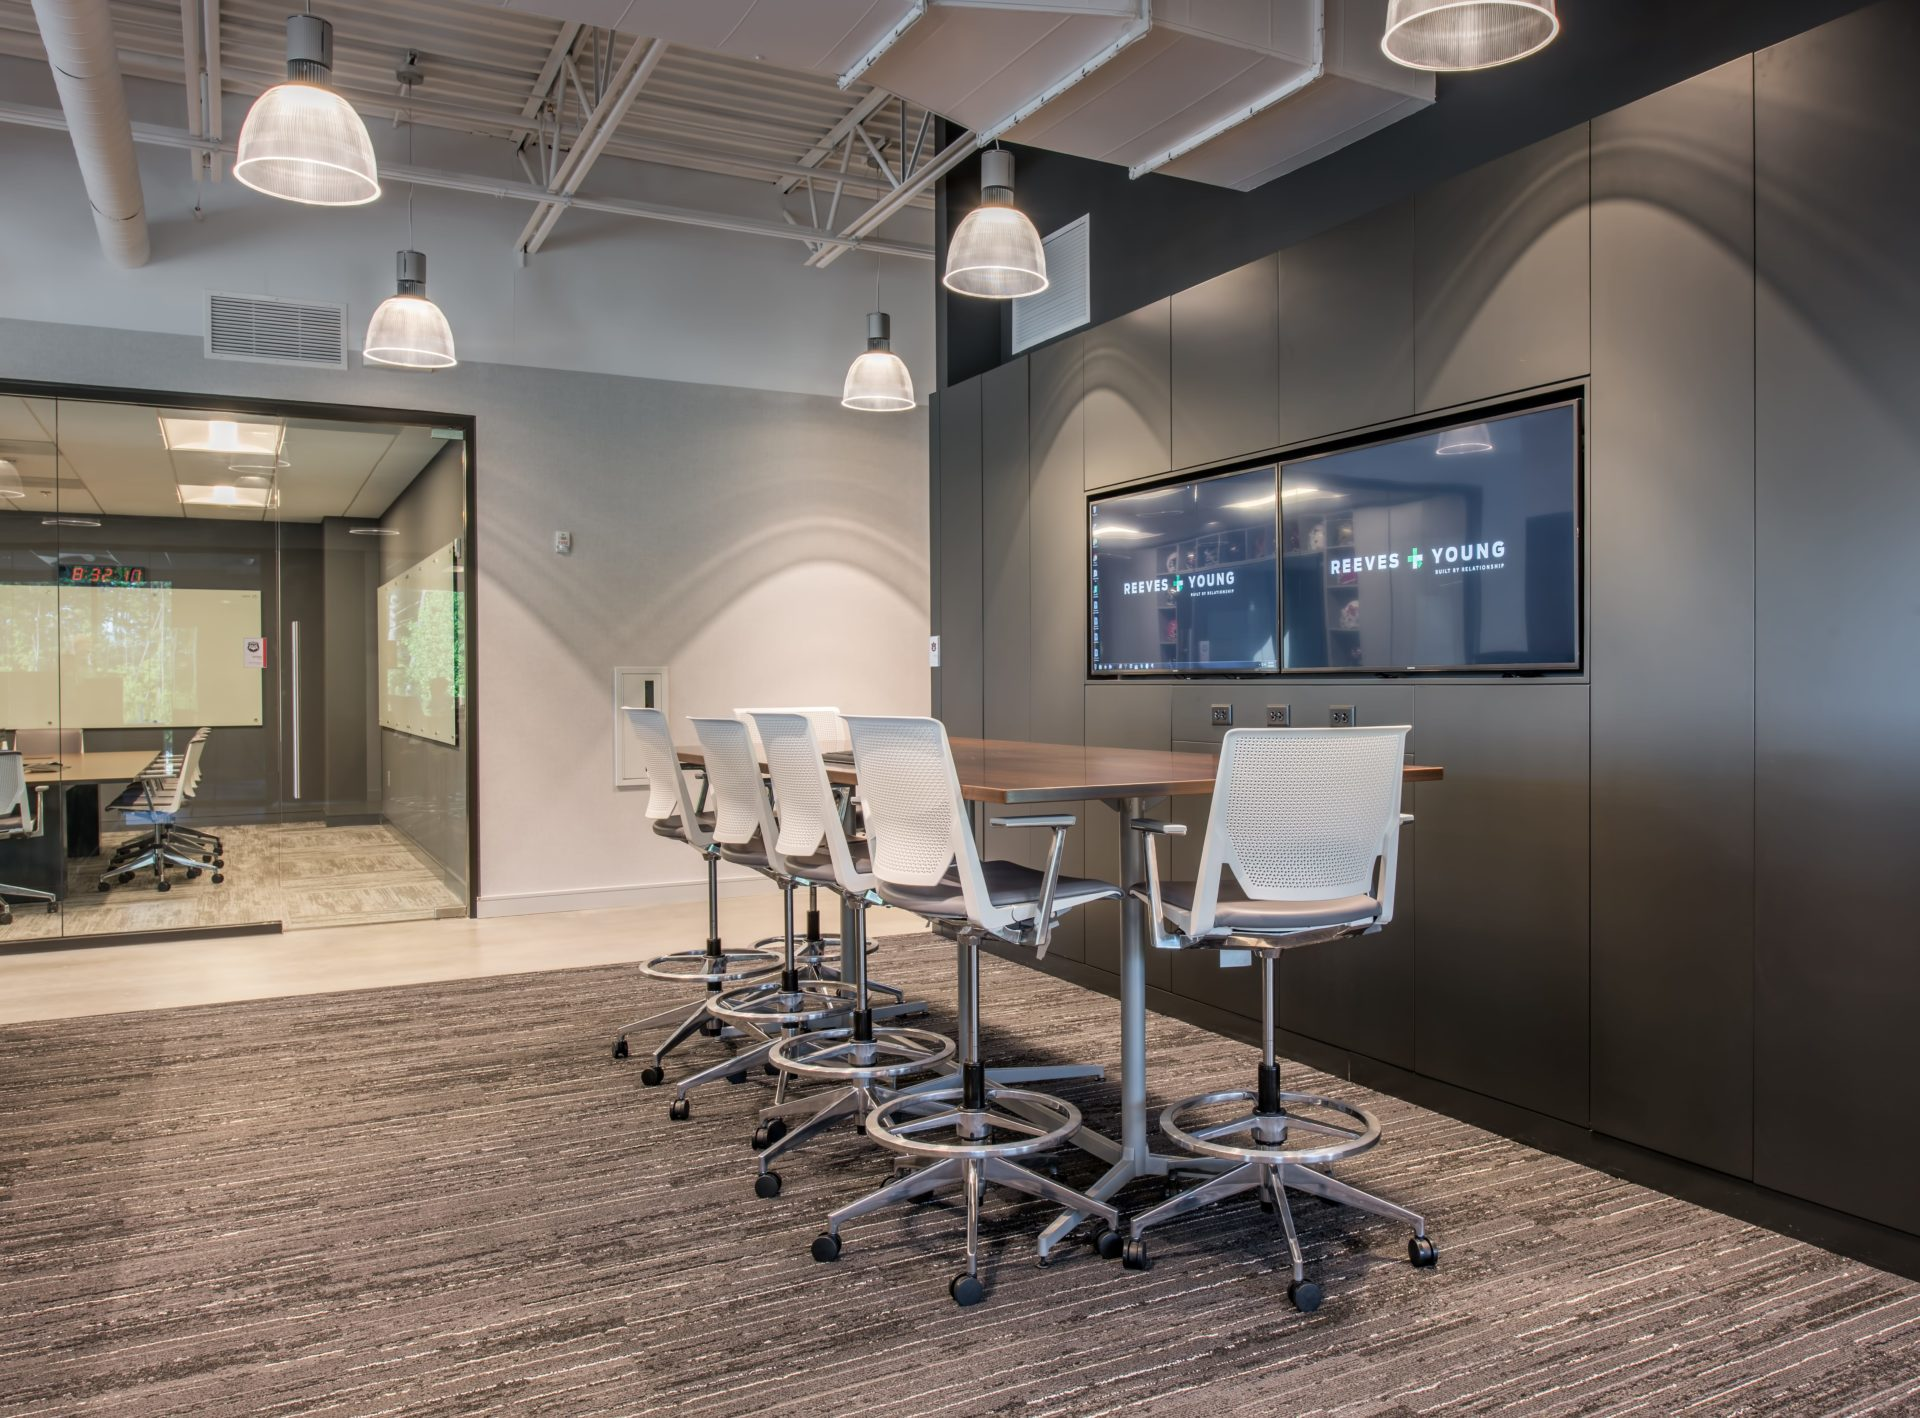 Striped Carpet Tile in Meeting Room